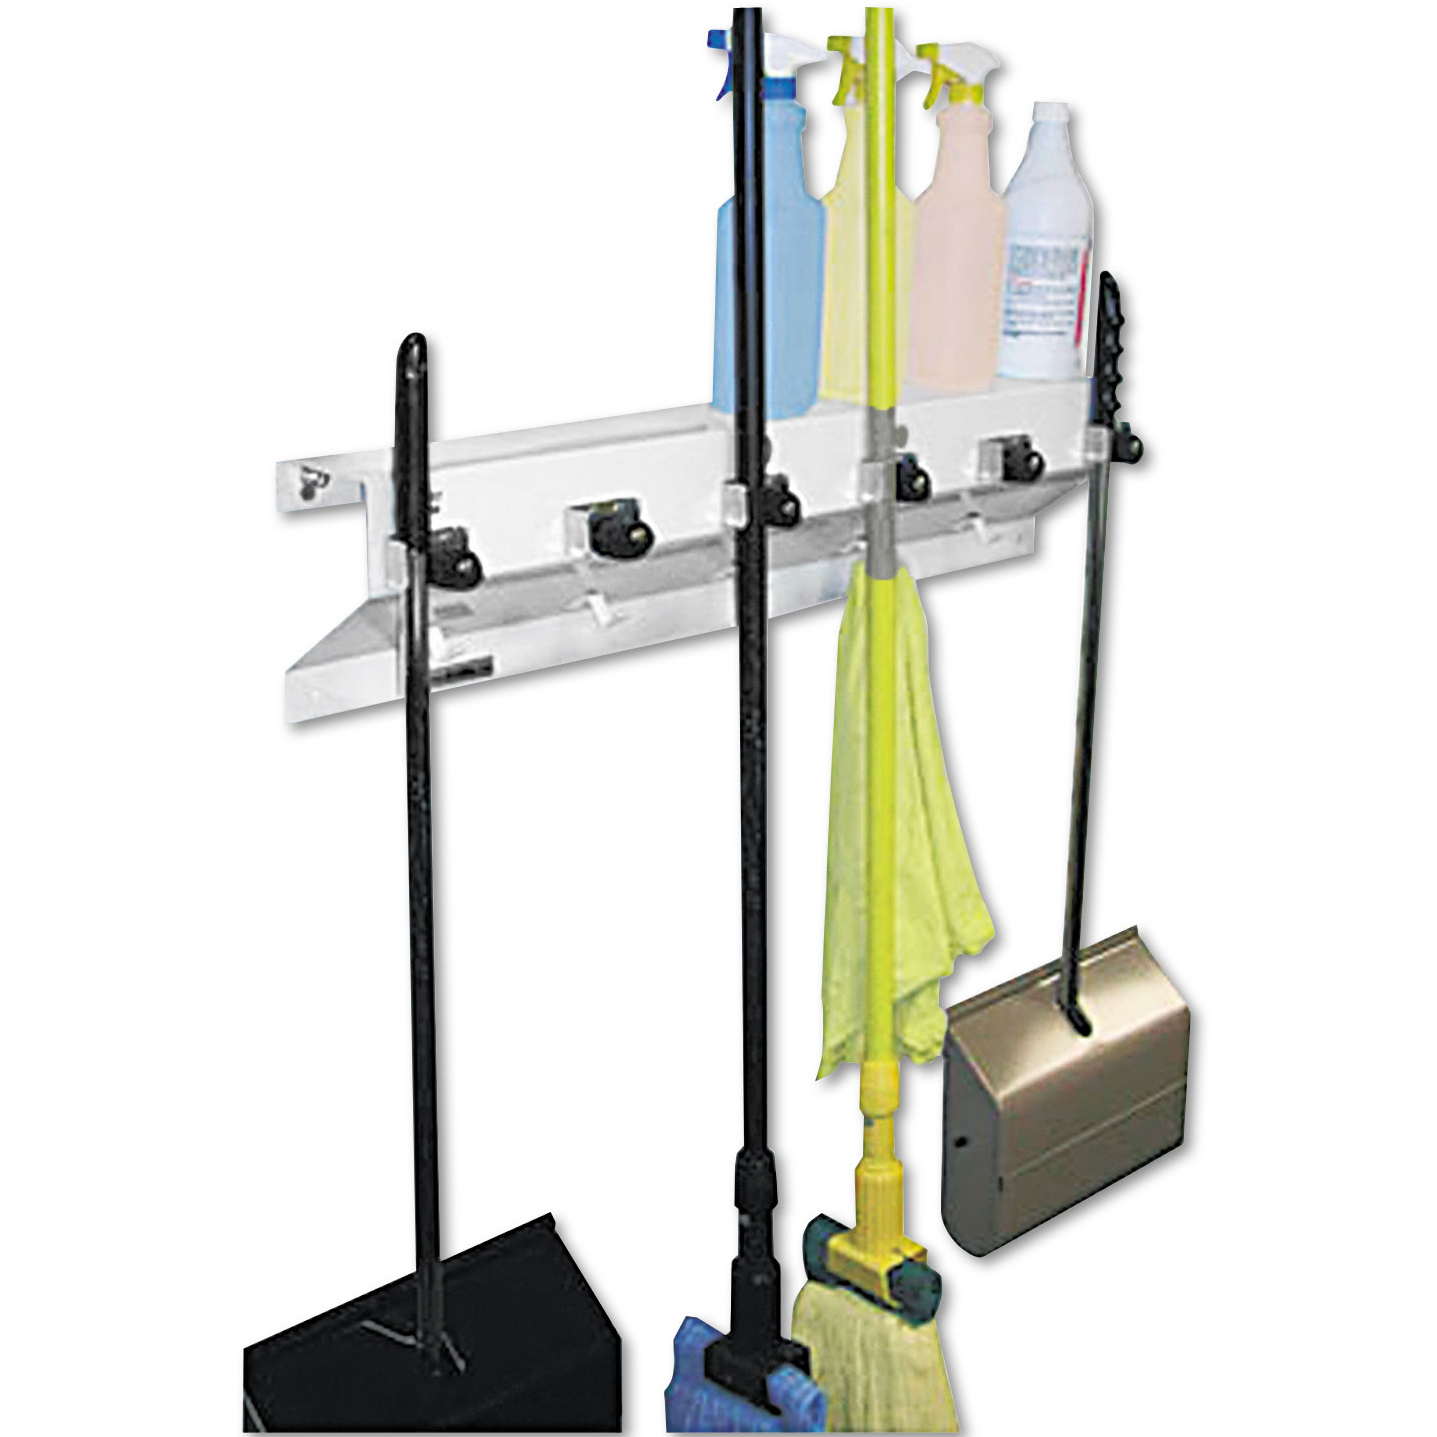 mop and broom organizer the clincher mop and broom holder - Broom Holder